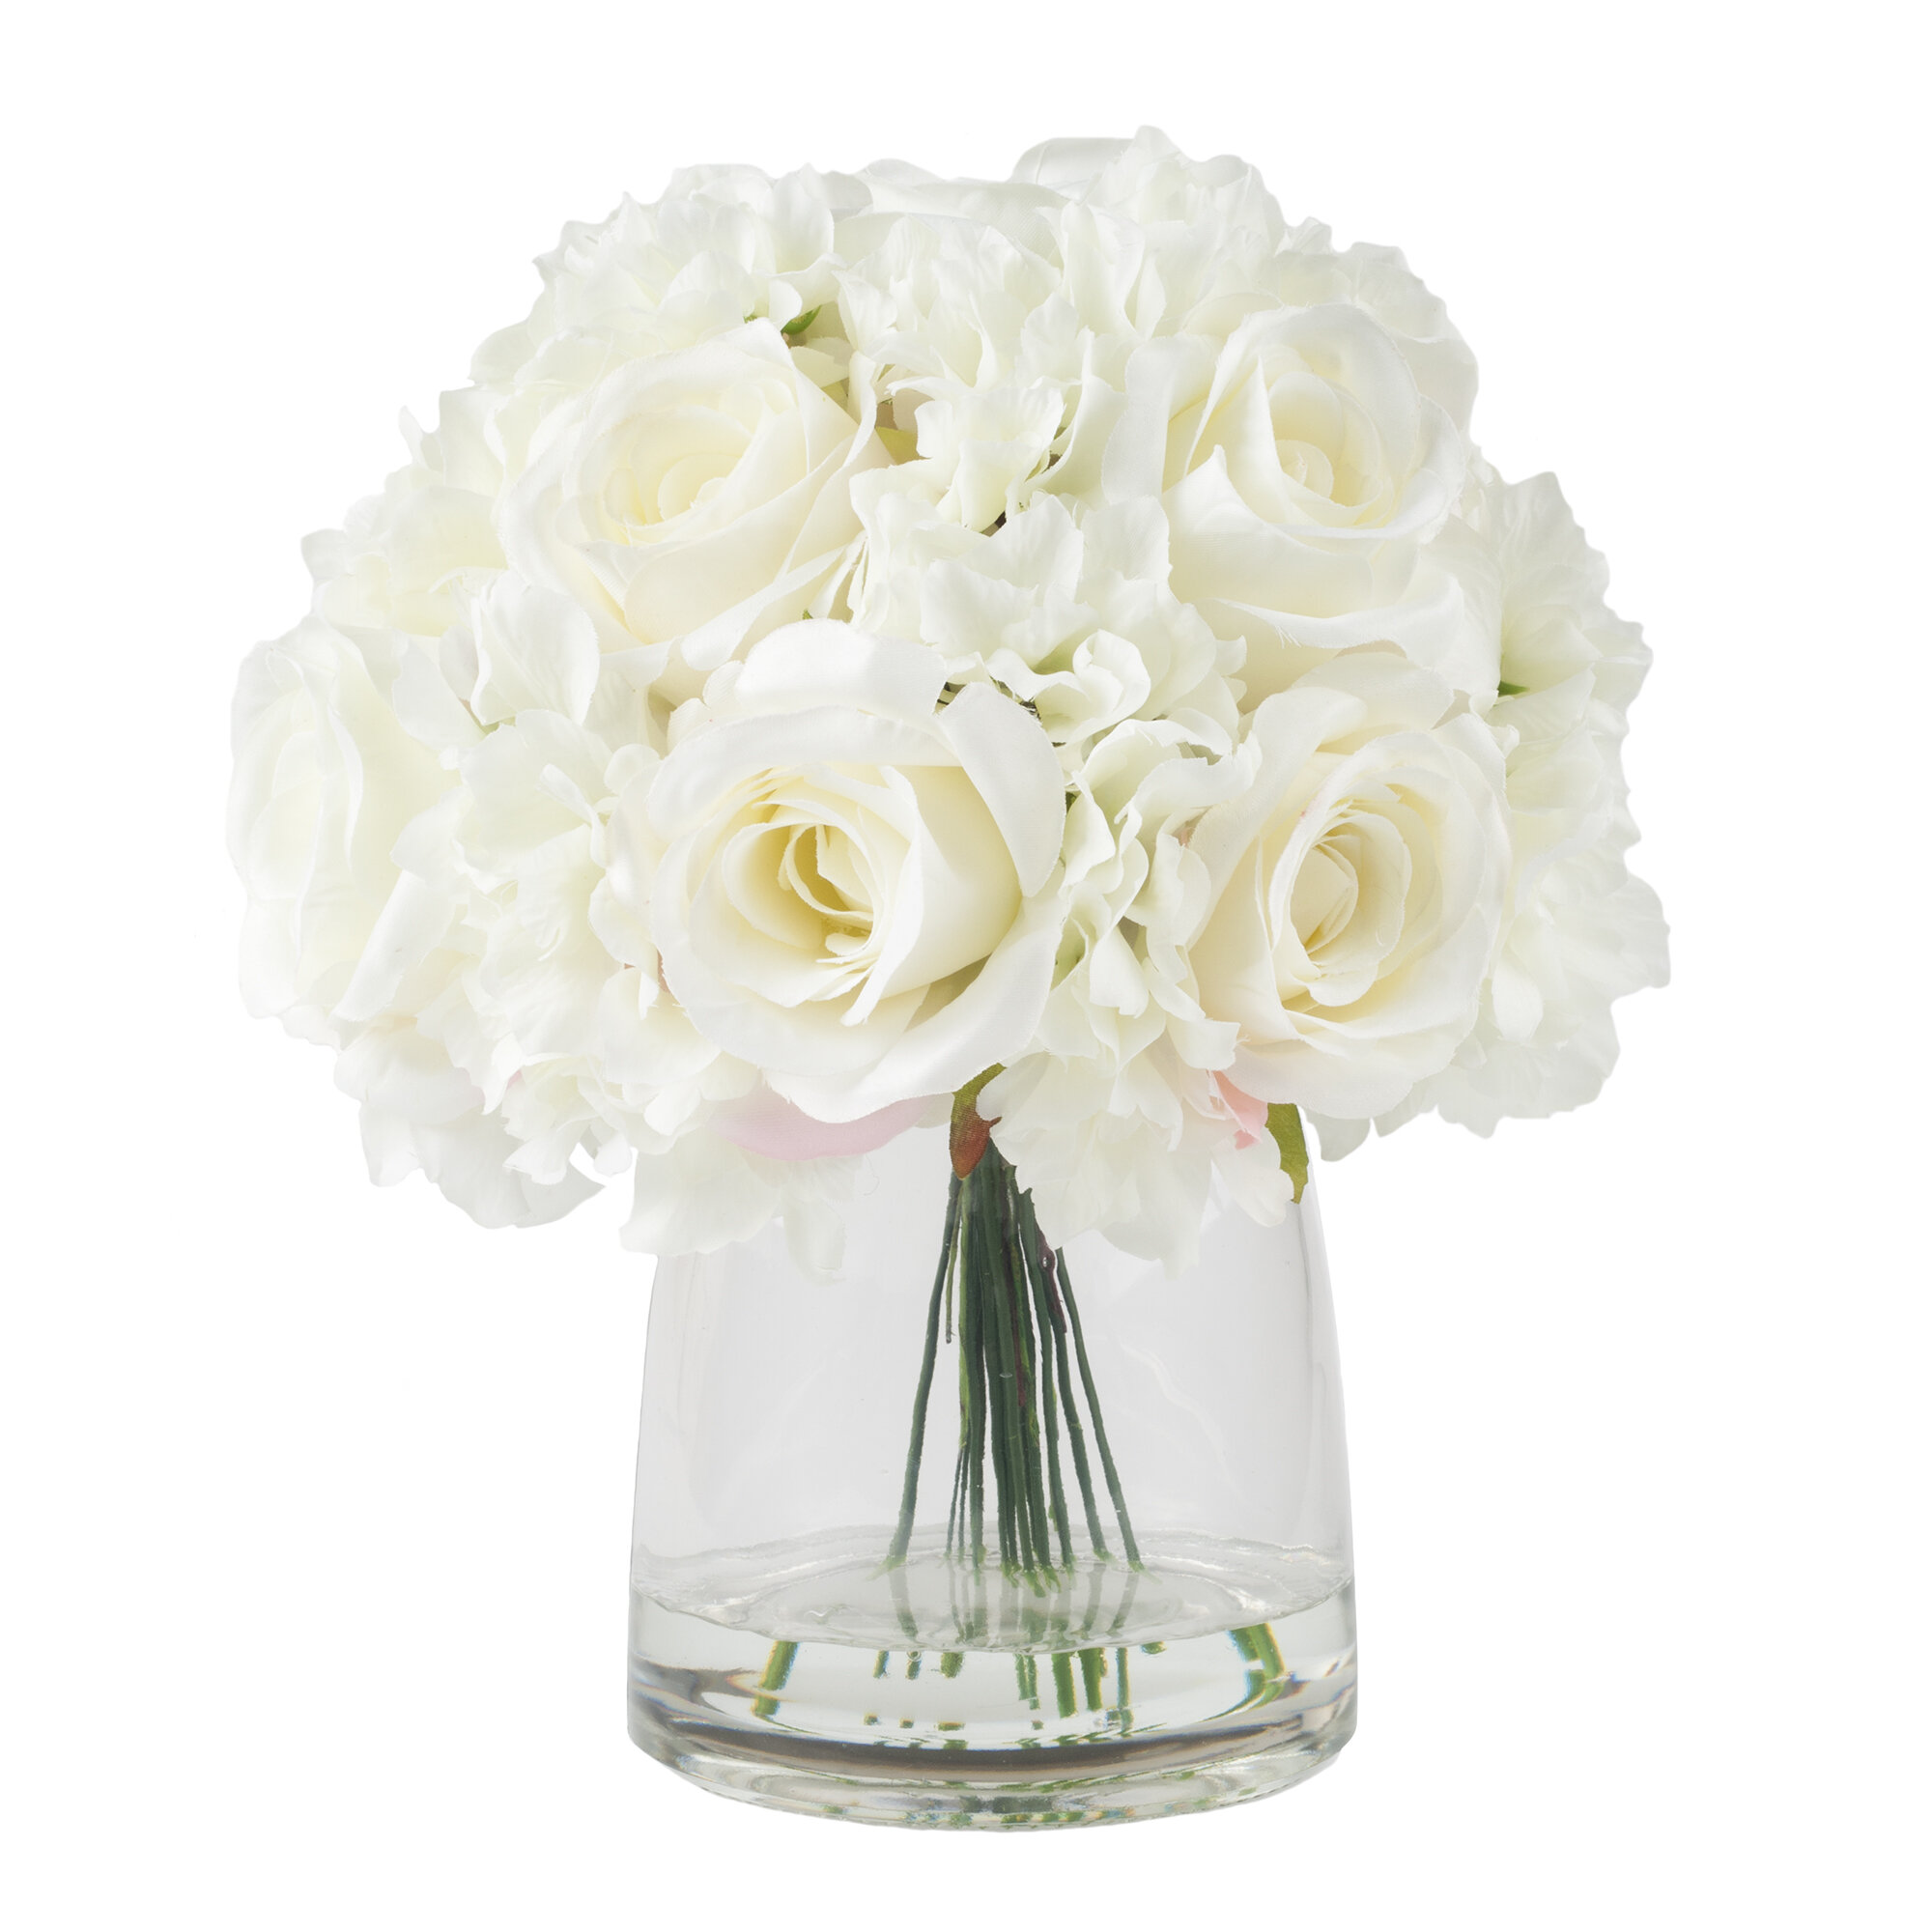 Trending Searches  sc 1 st  Joss \u0026 Main & Hydrangea and Rose Floral Arrangement and Centerpieces in Glass Vase ...